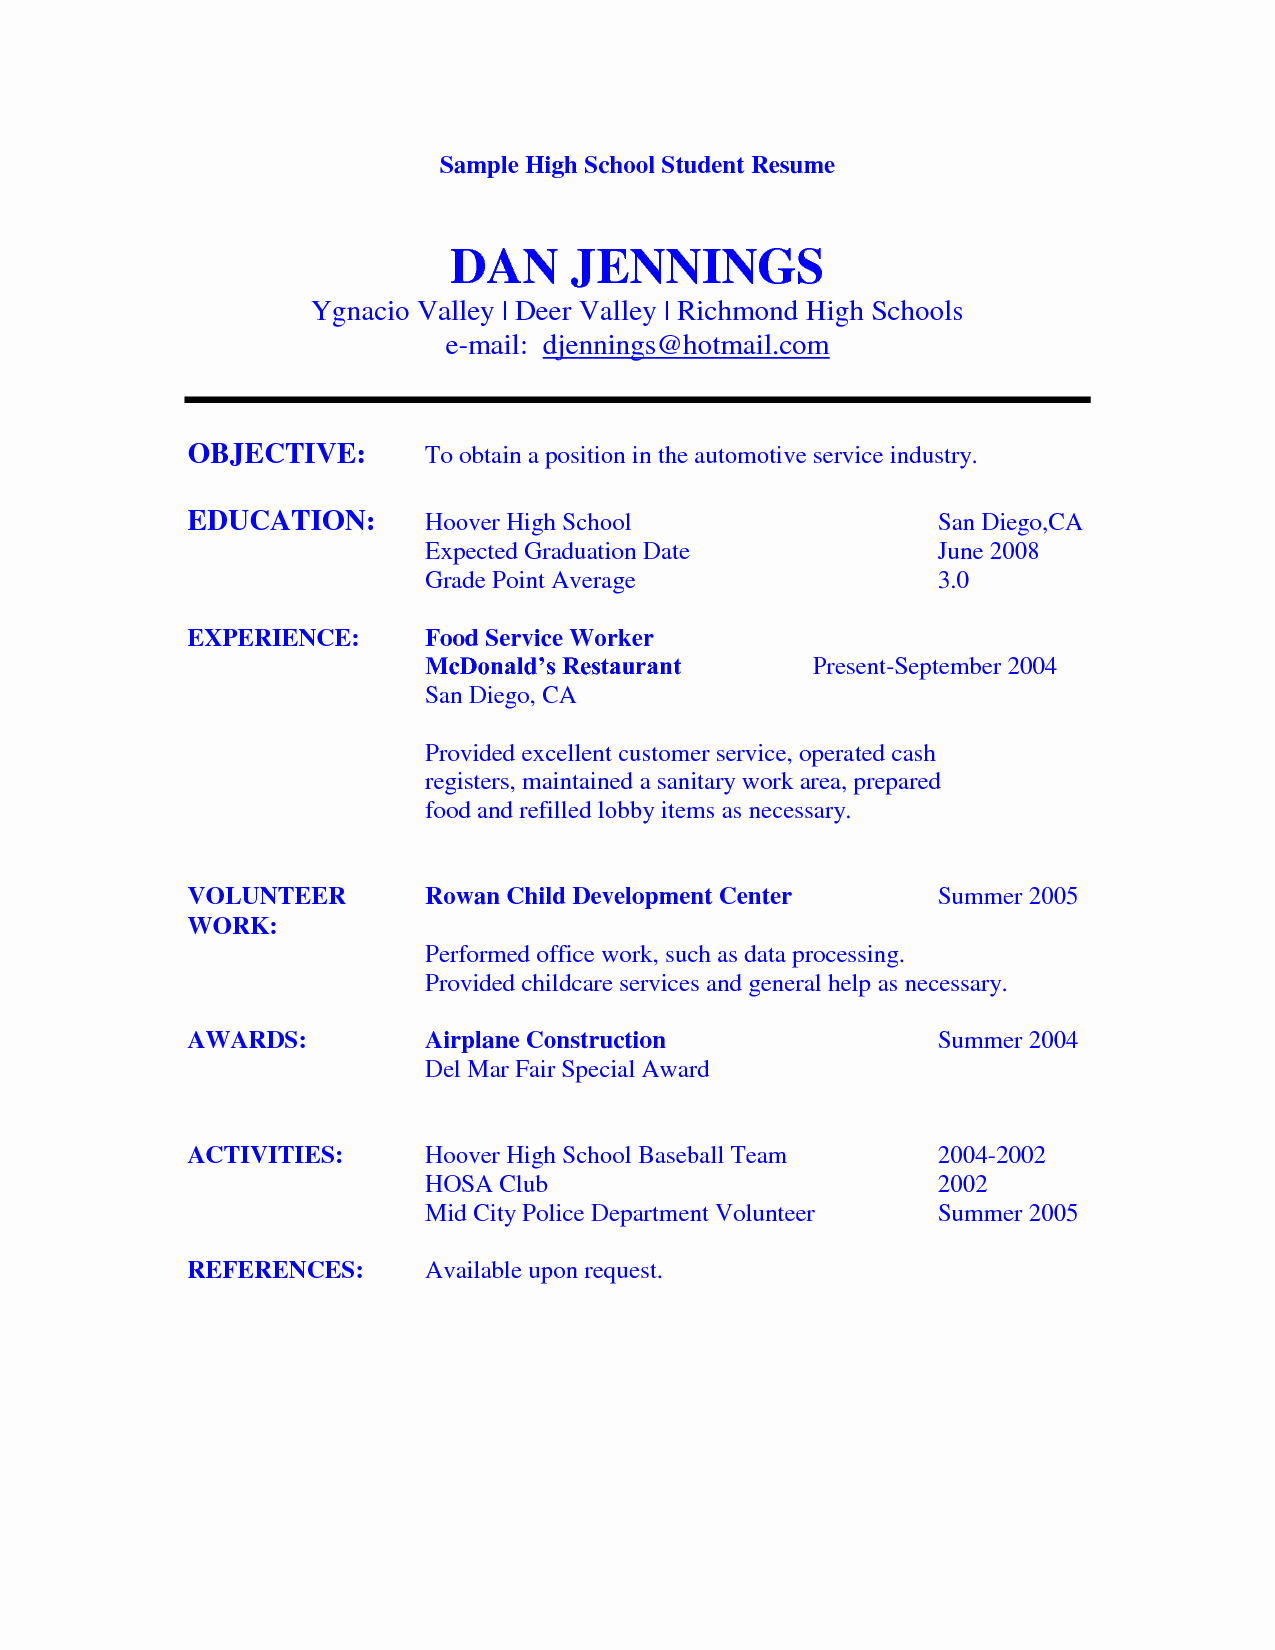 Resume Example for High School Student Sample Resumes